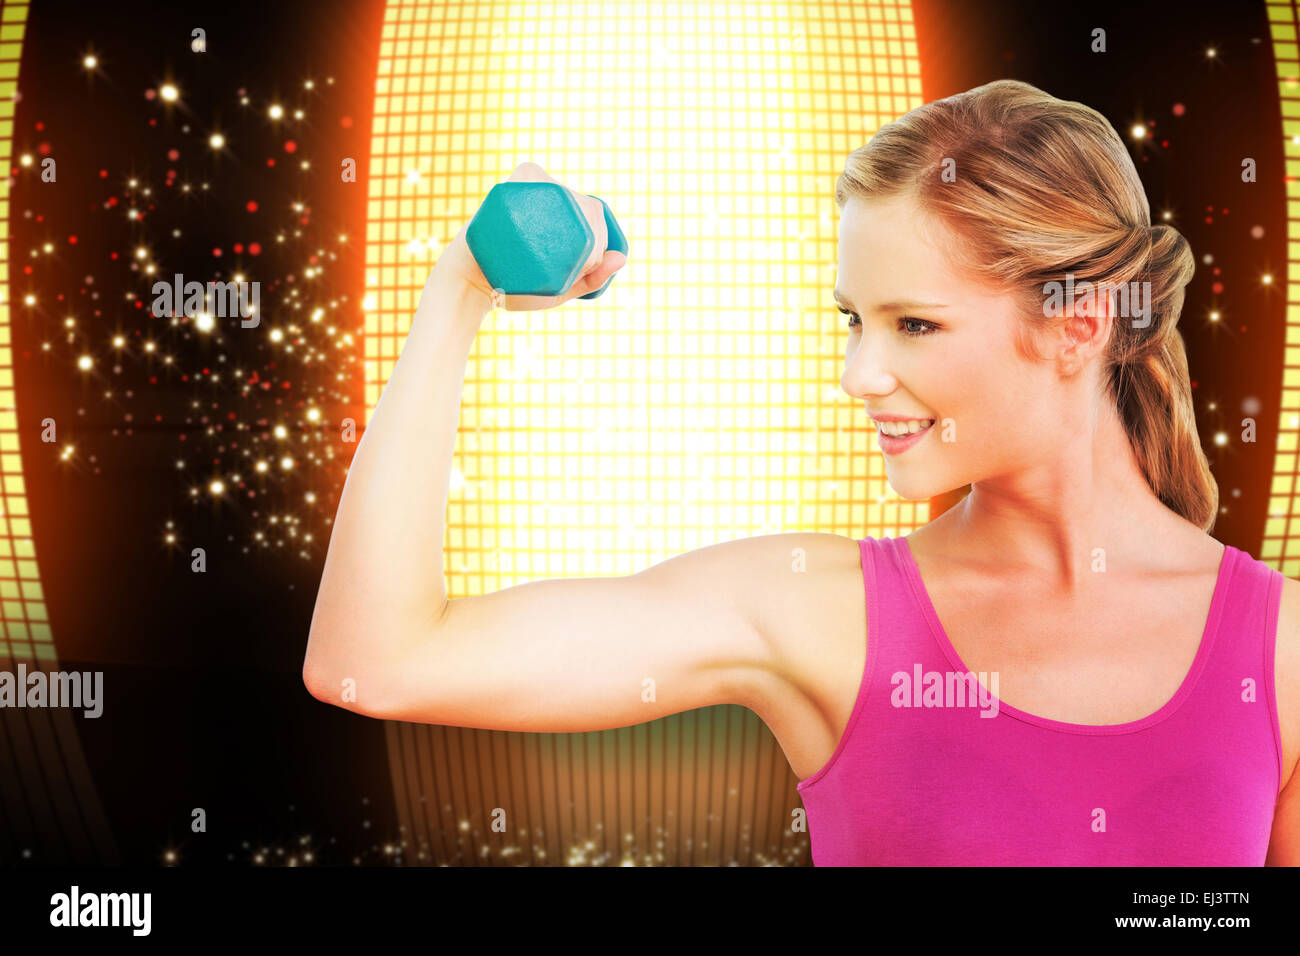 Composite image of fit blonde lifting dumbbell and flexing - Stock Image